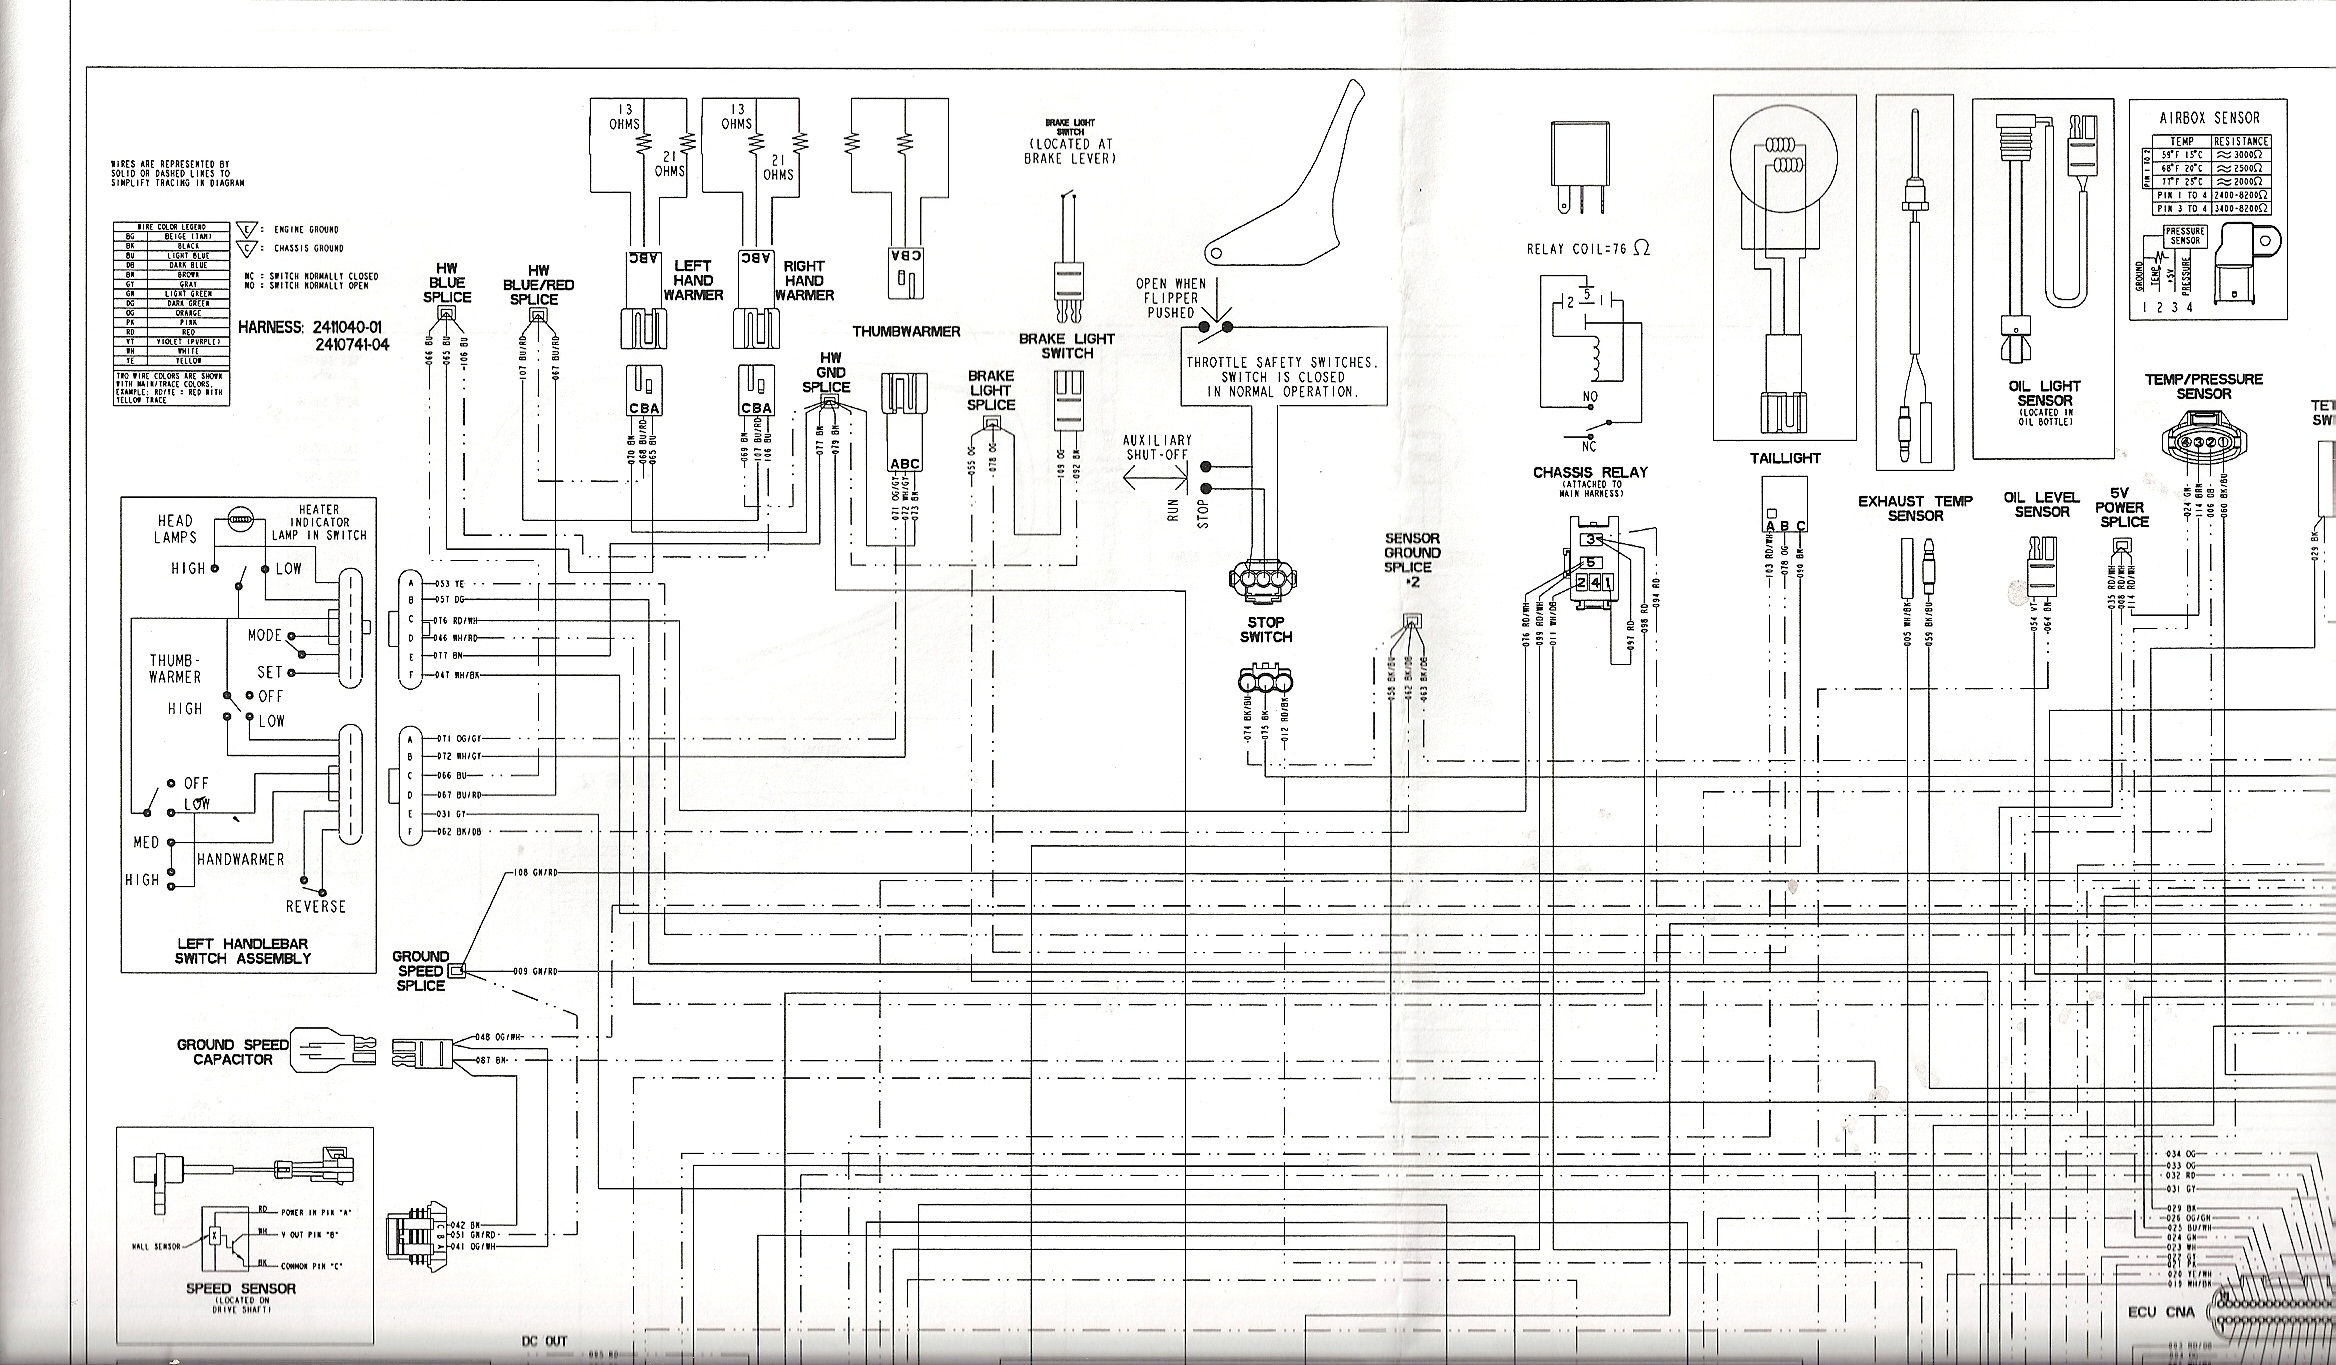 2010 polaris rush 600 wiring diagram